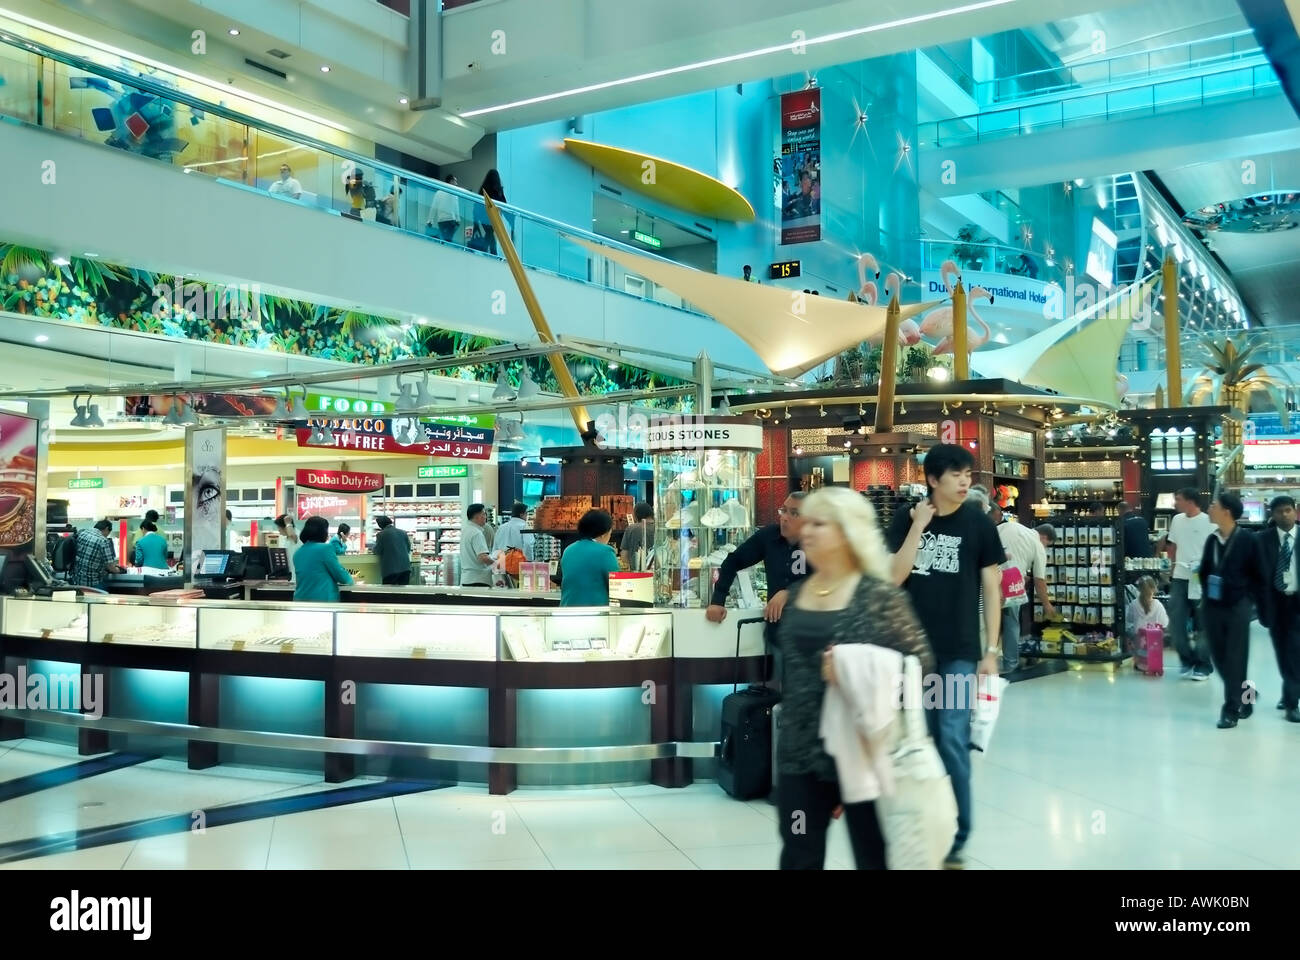 Dubai, 'United Arab Emirates' Airport 'Shopping Center' people inside Modern 'Shopping Mall' - Stock Image